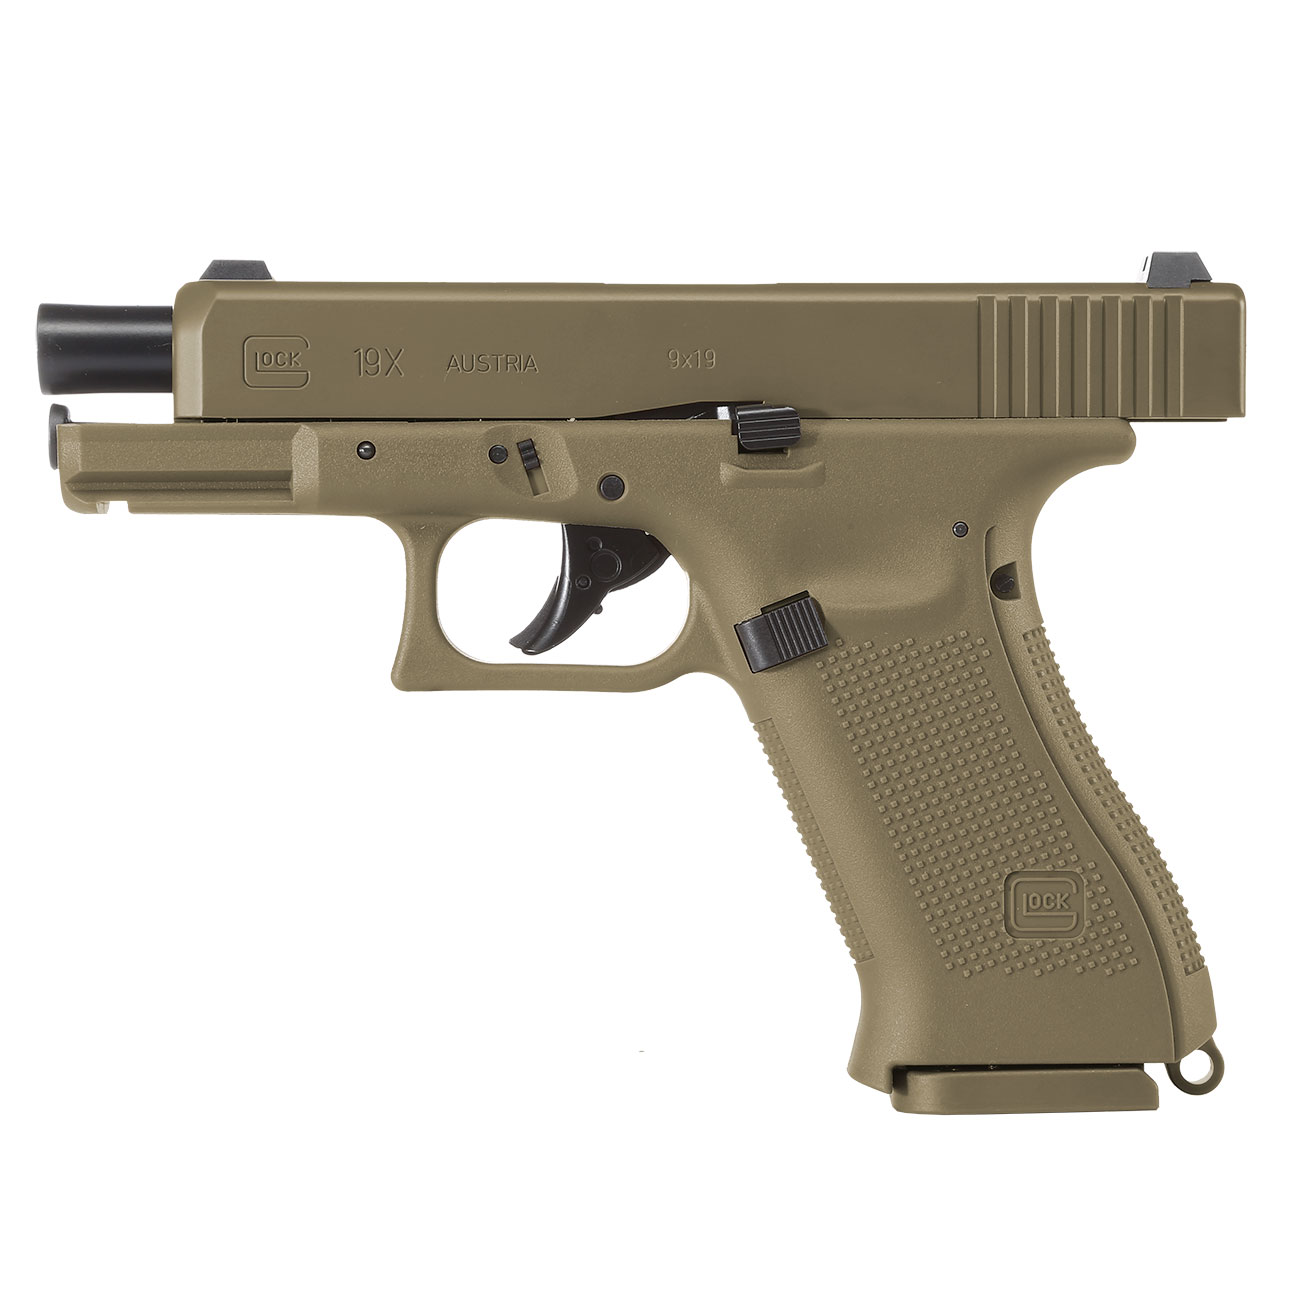 Glock 19X CO2-Luftpistole Kal. 4,5mm Stahl-BB coyote tan Blowback 2